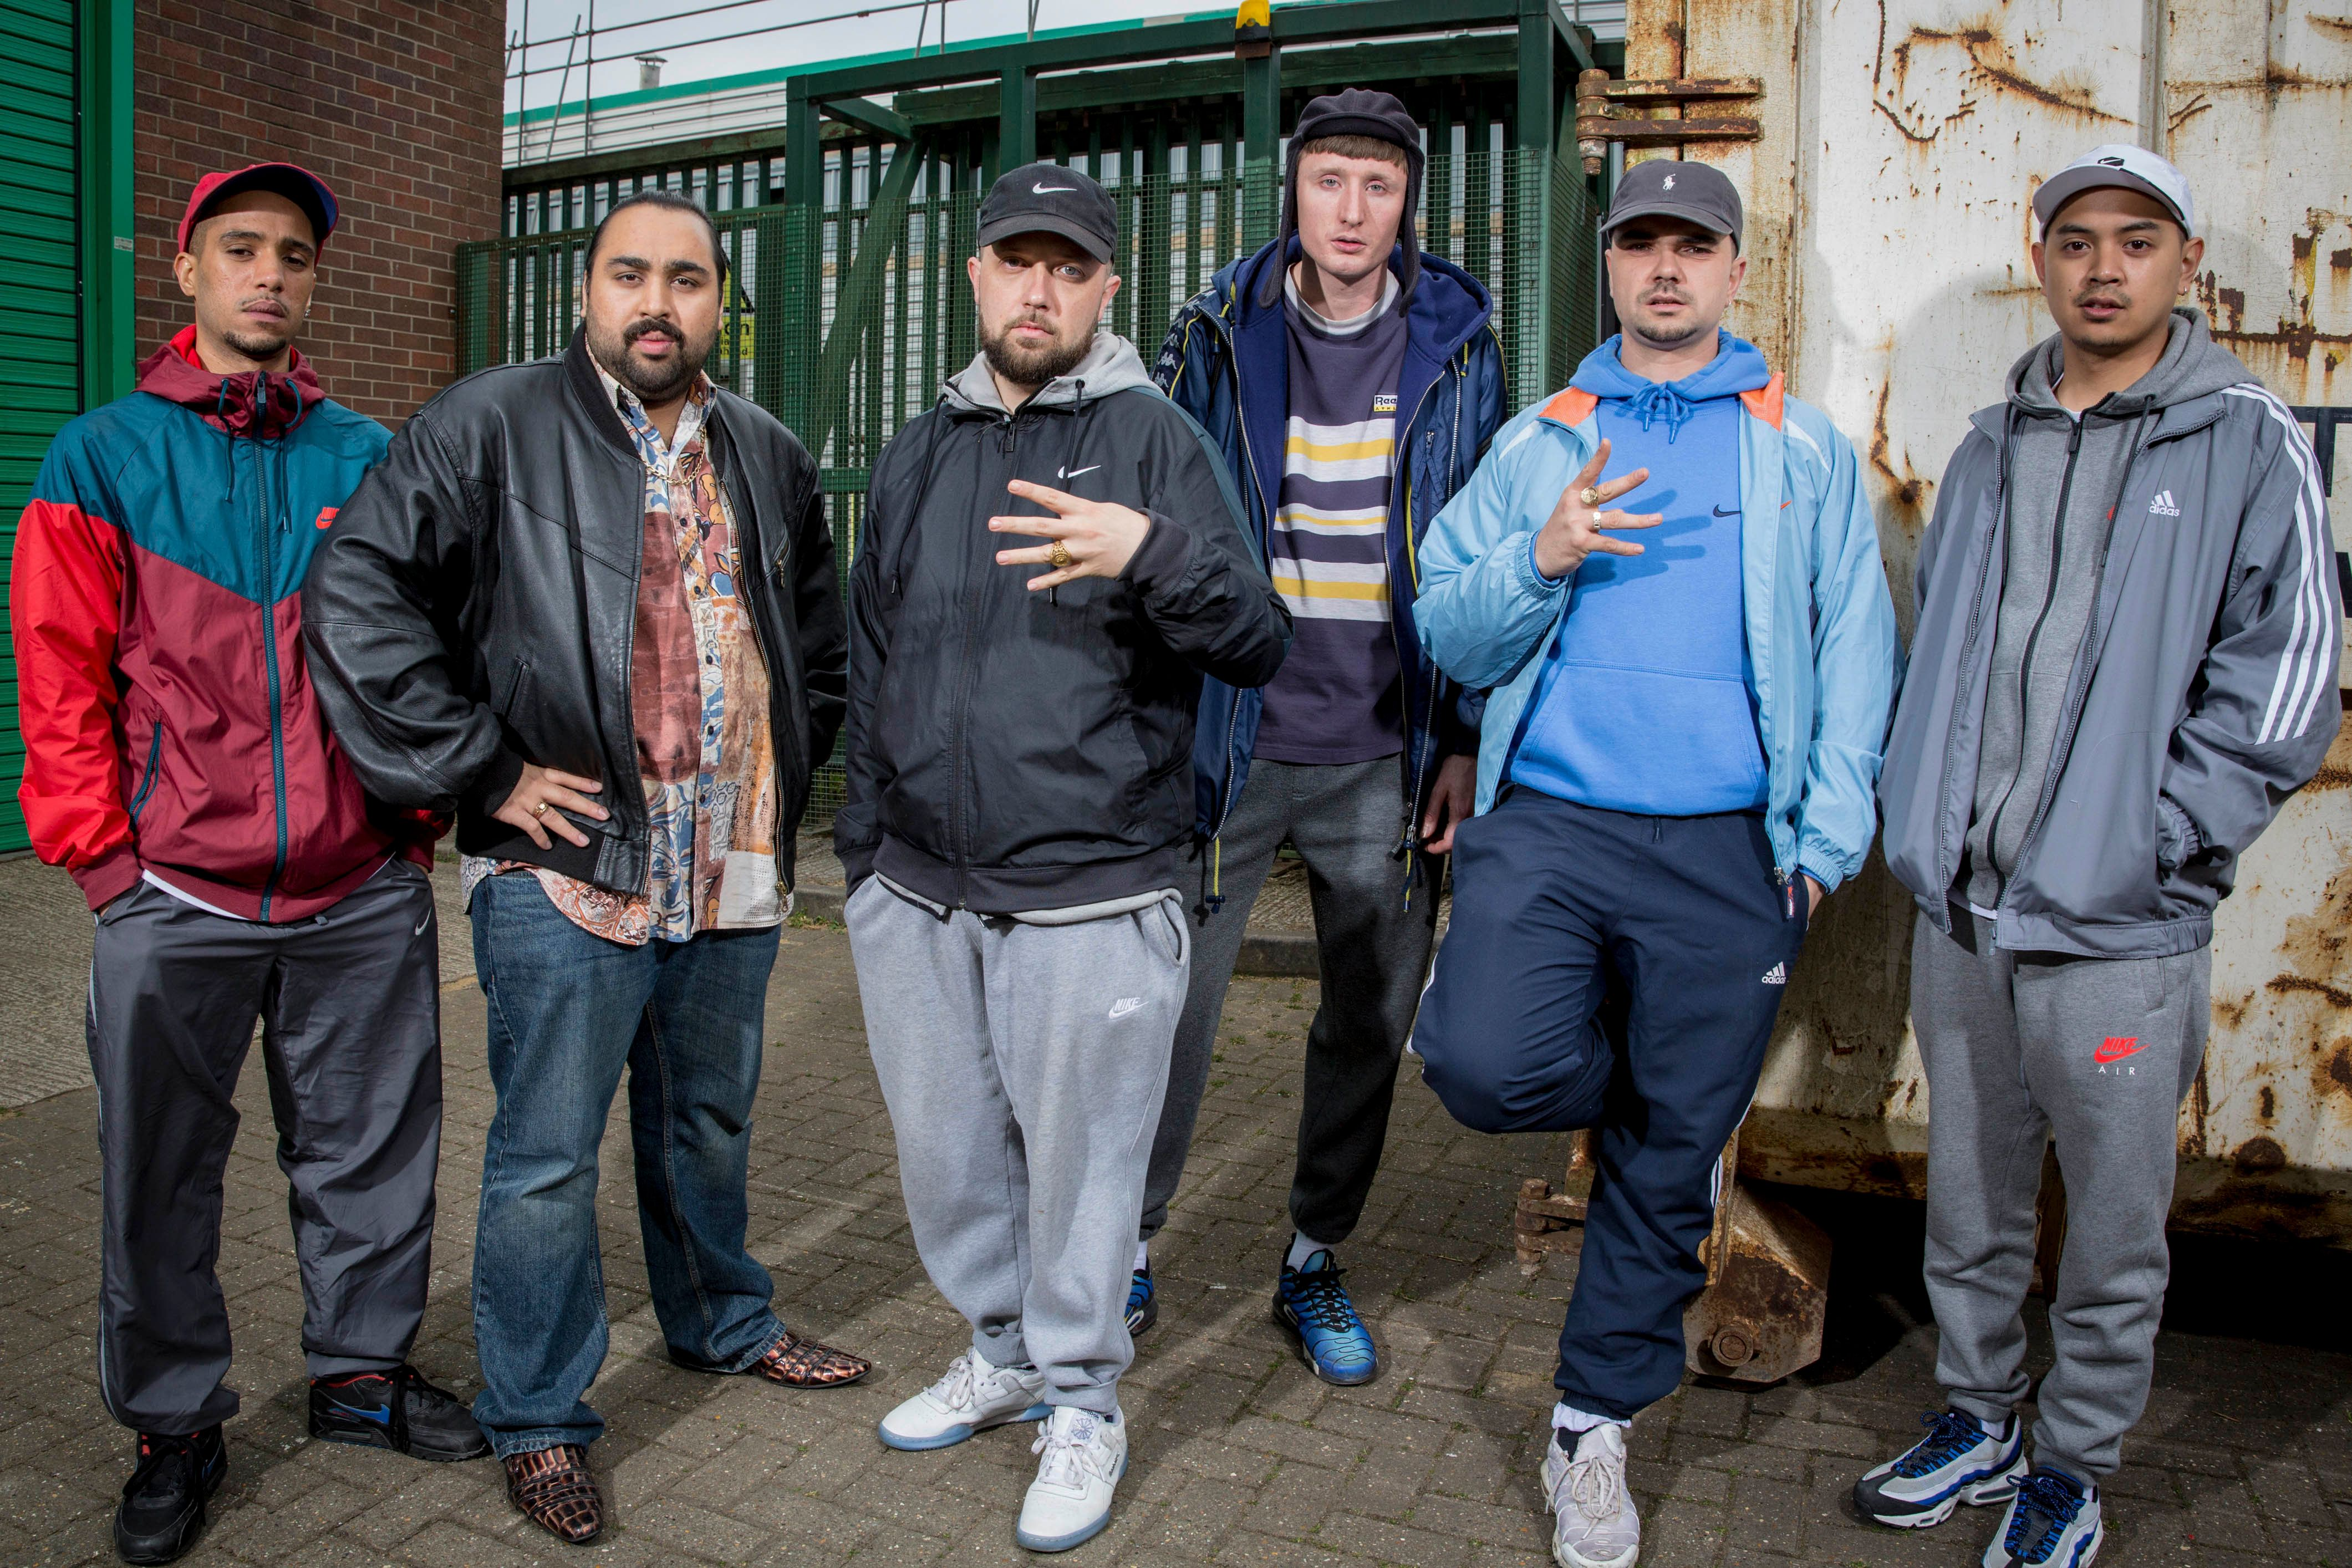 WISE WORDS: Kurupt FM's MC Grindah Shares His Wisdom With The